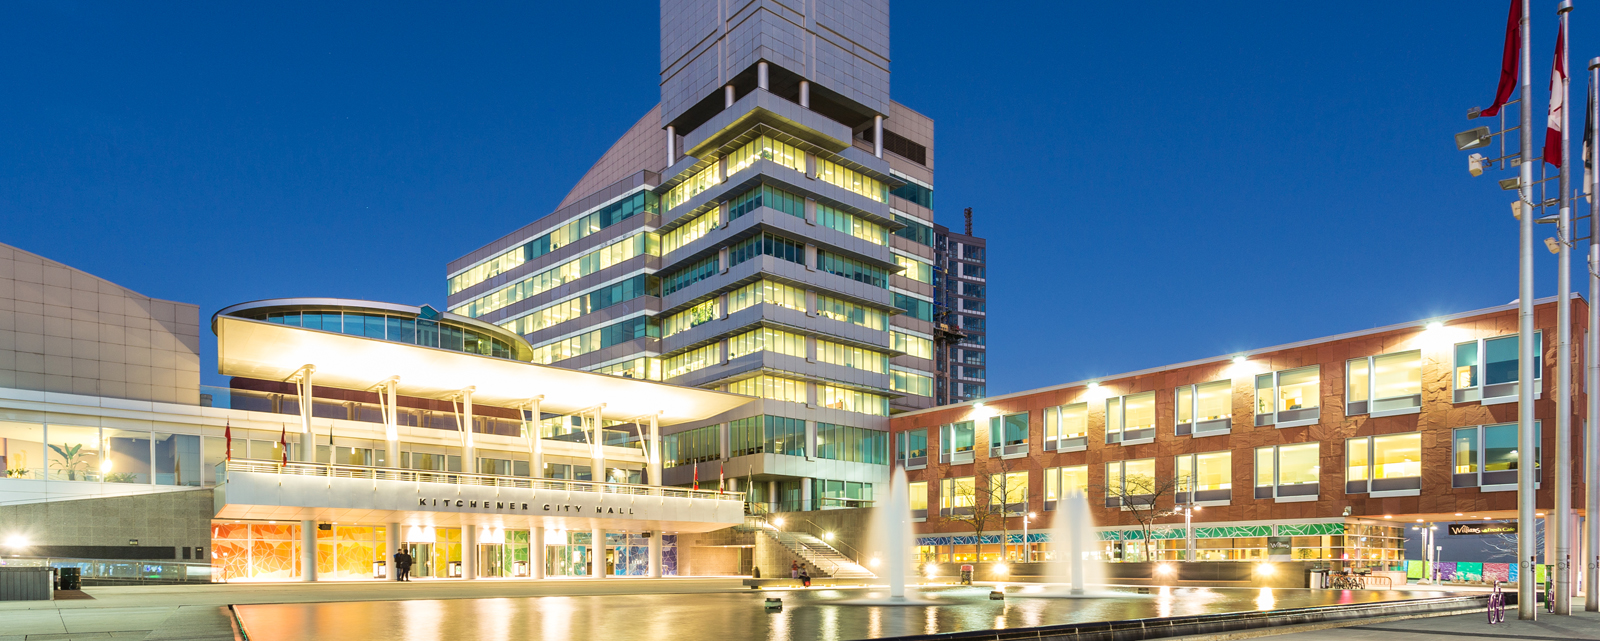 Village Media extends Rogers relationship to Kitchener » Media in Canada